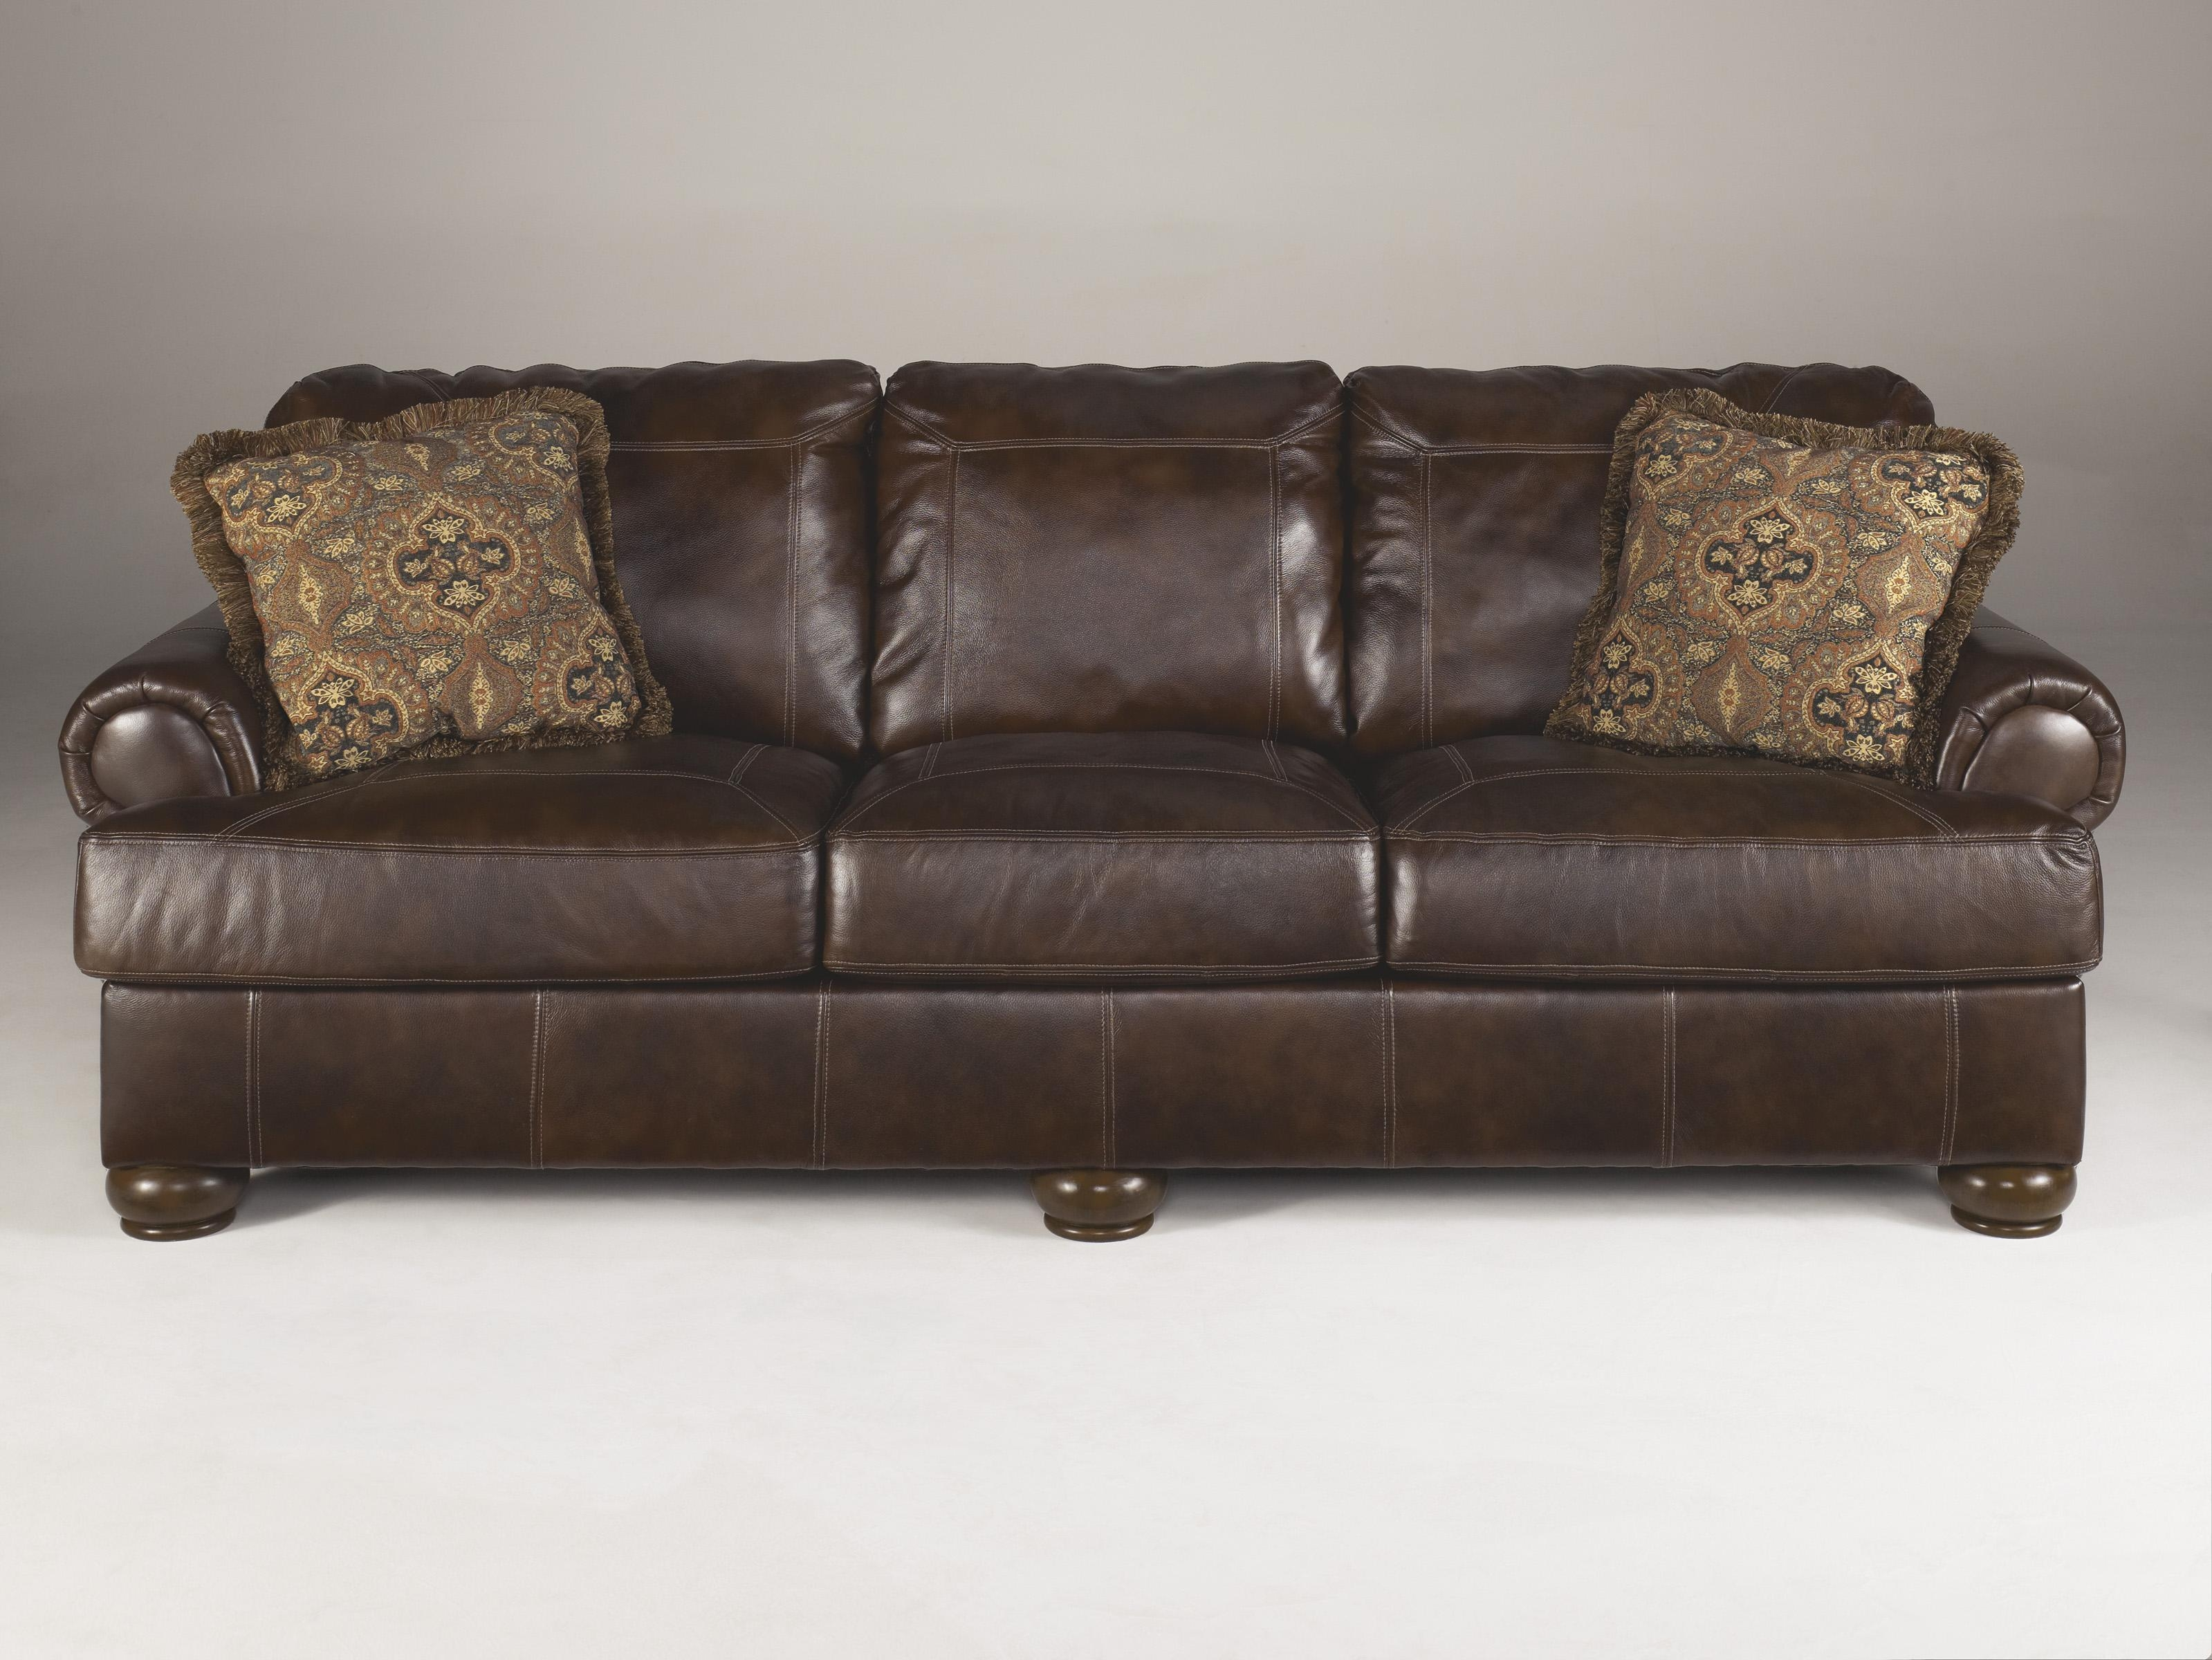 Axiom Leather Sofaashley Furniture – Texas Furniture Hut In Sealy Leather Sofas (View 13 of 20)